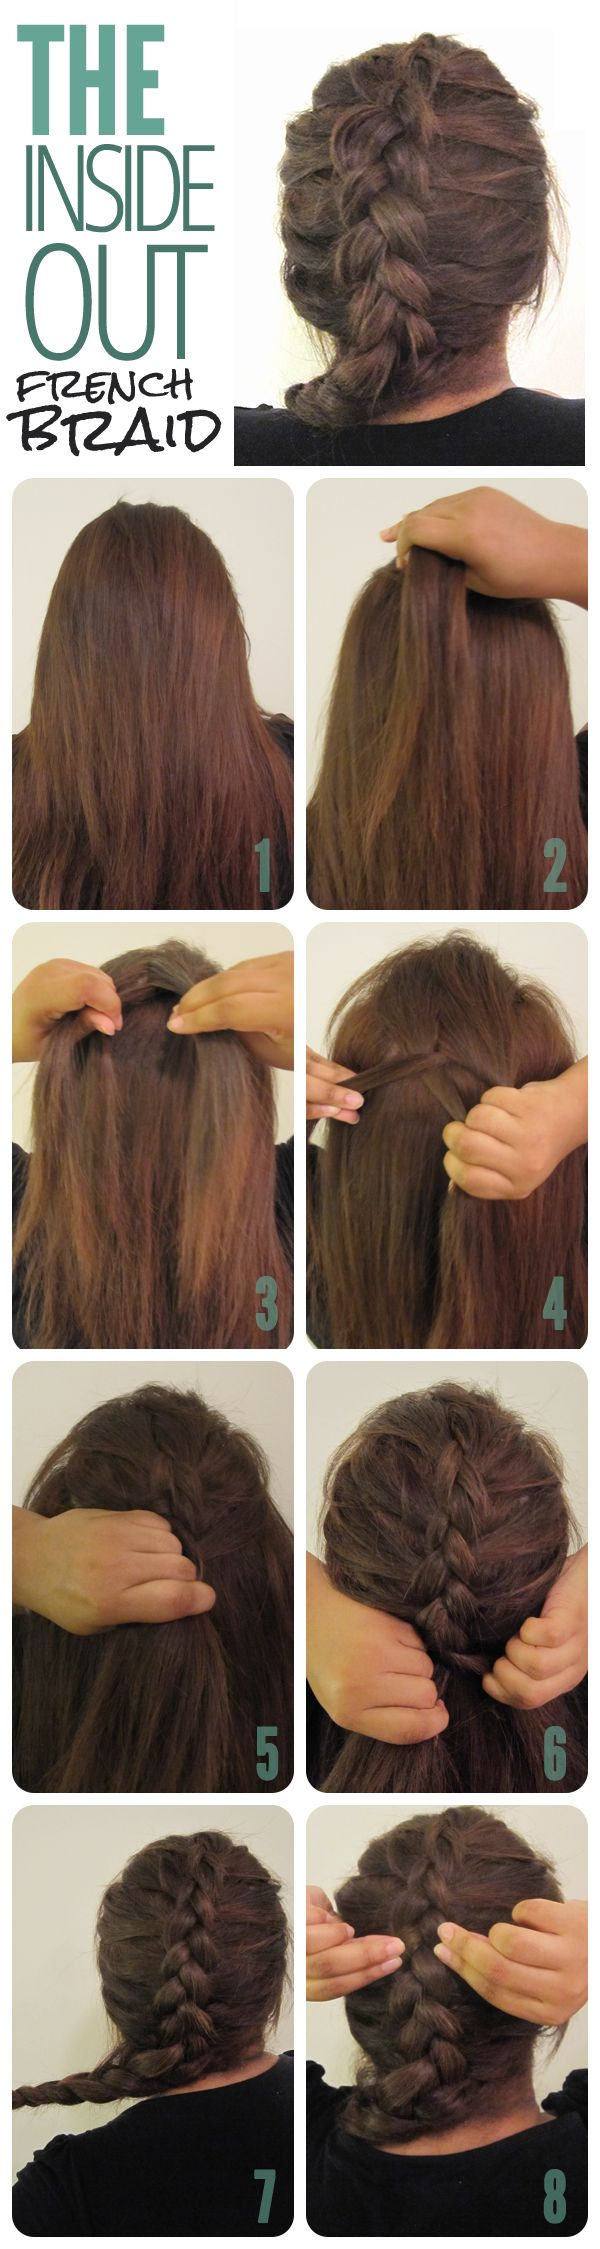 Surprising 1000 Ideas About Inside Out French Braid On Pinterest French Short Hairstyles Gunalazisus